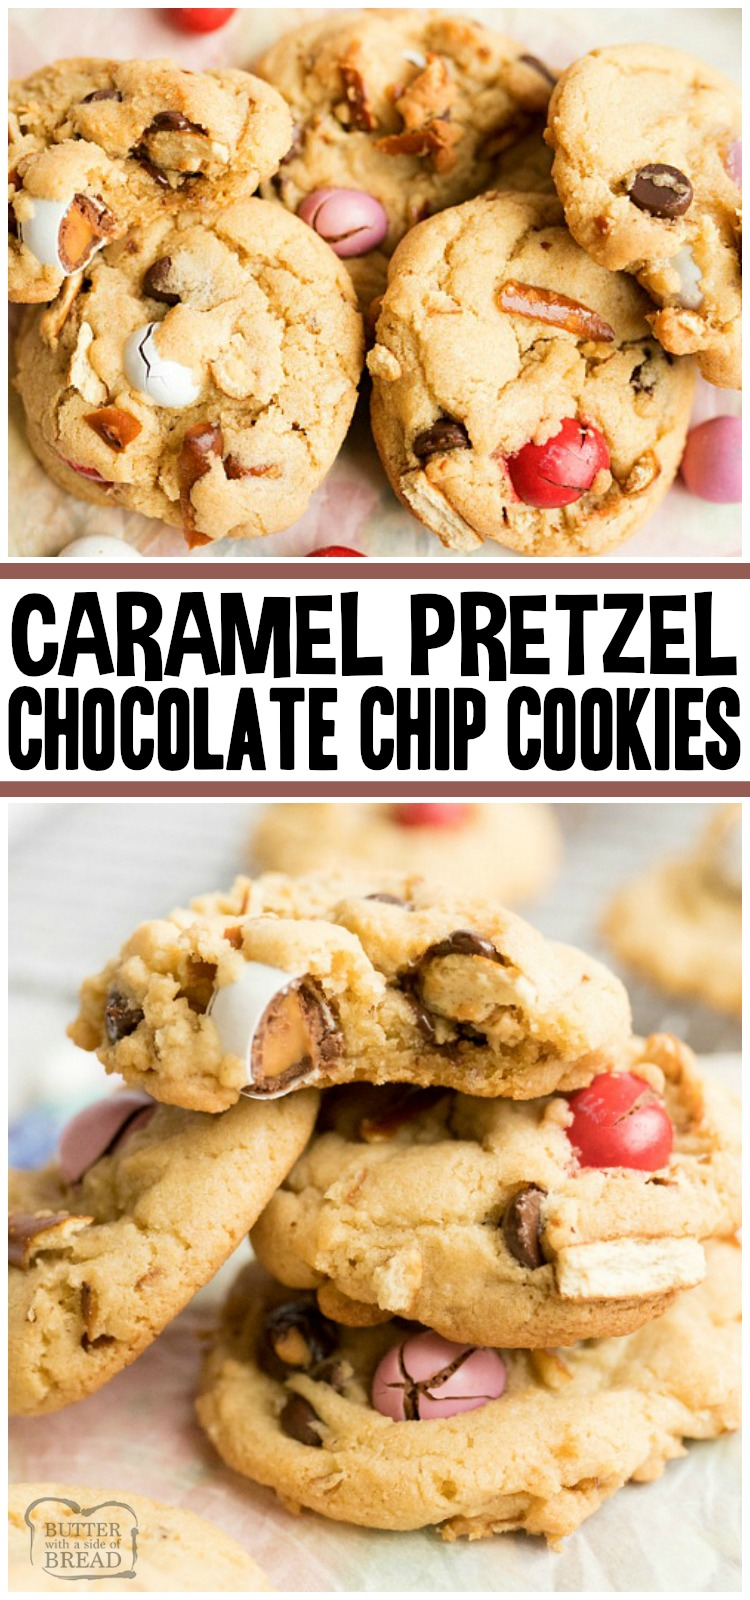 Caramel Pretzel Chocolate Chip Cookies are the ultimate salty sweet combo! Crushed pretzels, Caramel M&M's and semi-sweet chocolate chips all nestled together in buttery cookie dough. Perfect variation on a classic chocolate chip cookie recipe! #cookies #caramel #pretzel #chocolate #chocolatechip #dessert #baking #recipe from BUTTER WITH A SIDE OF BREAD